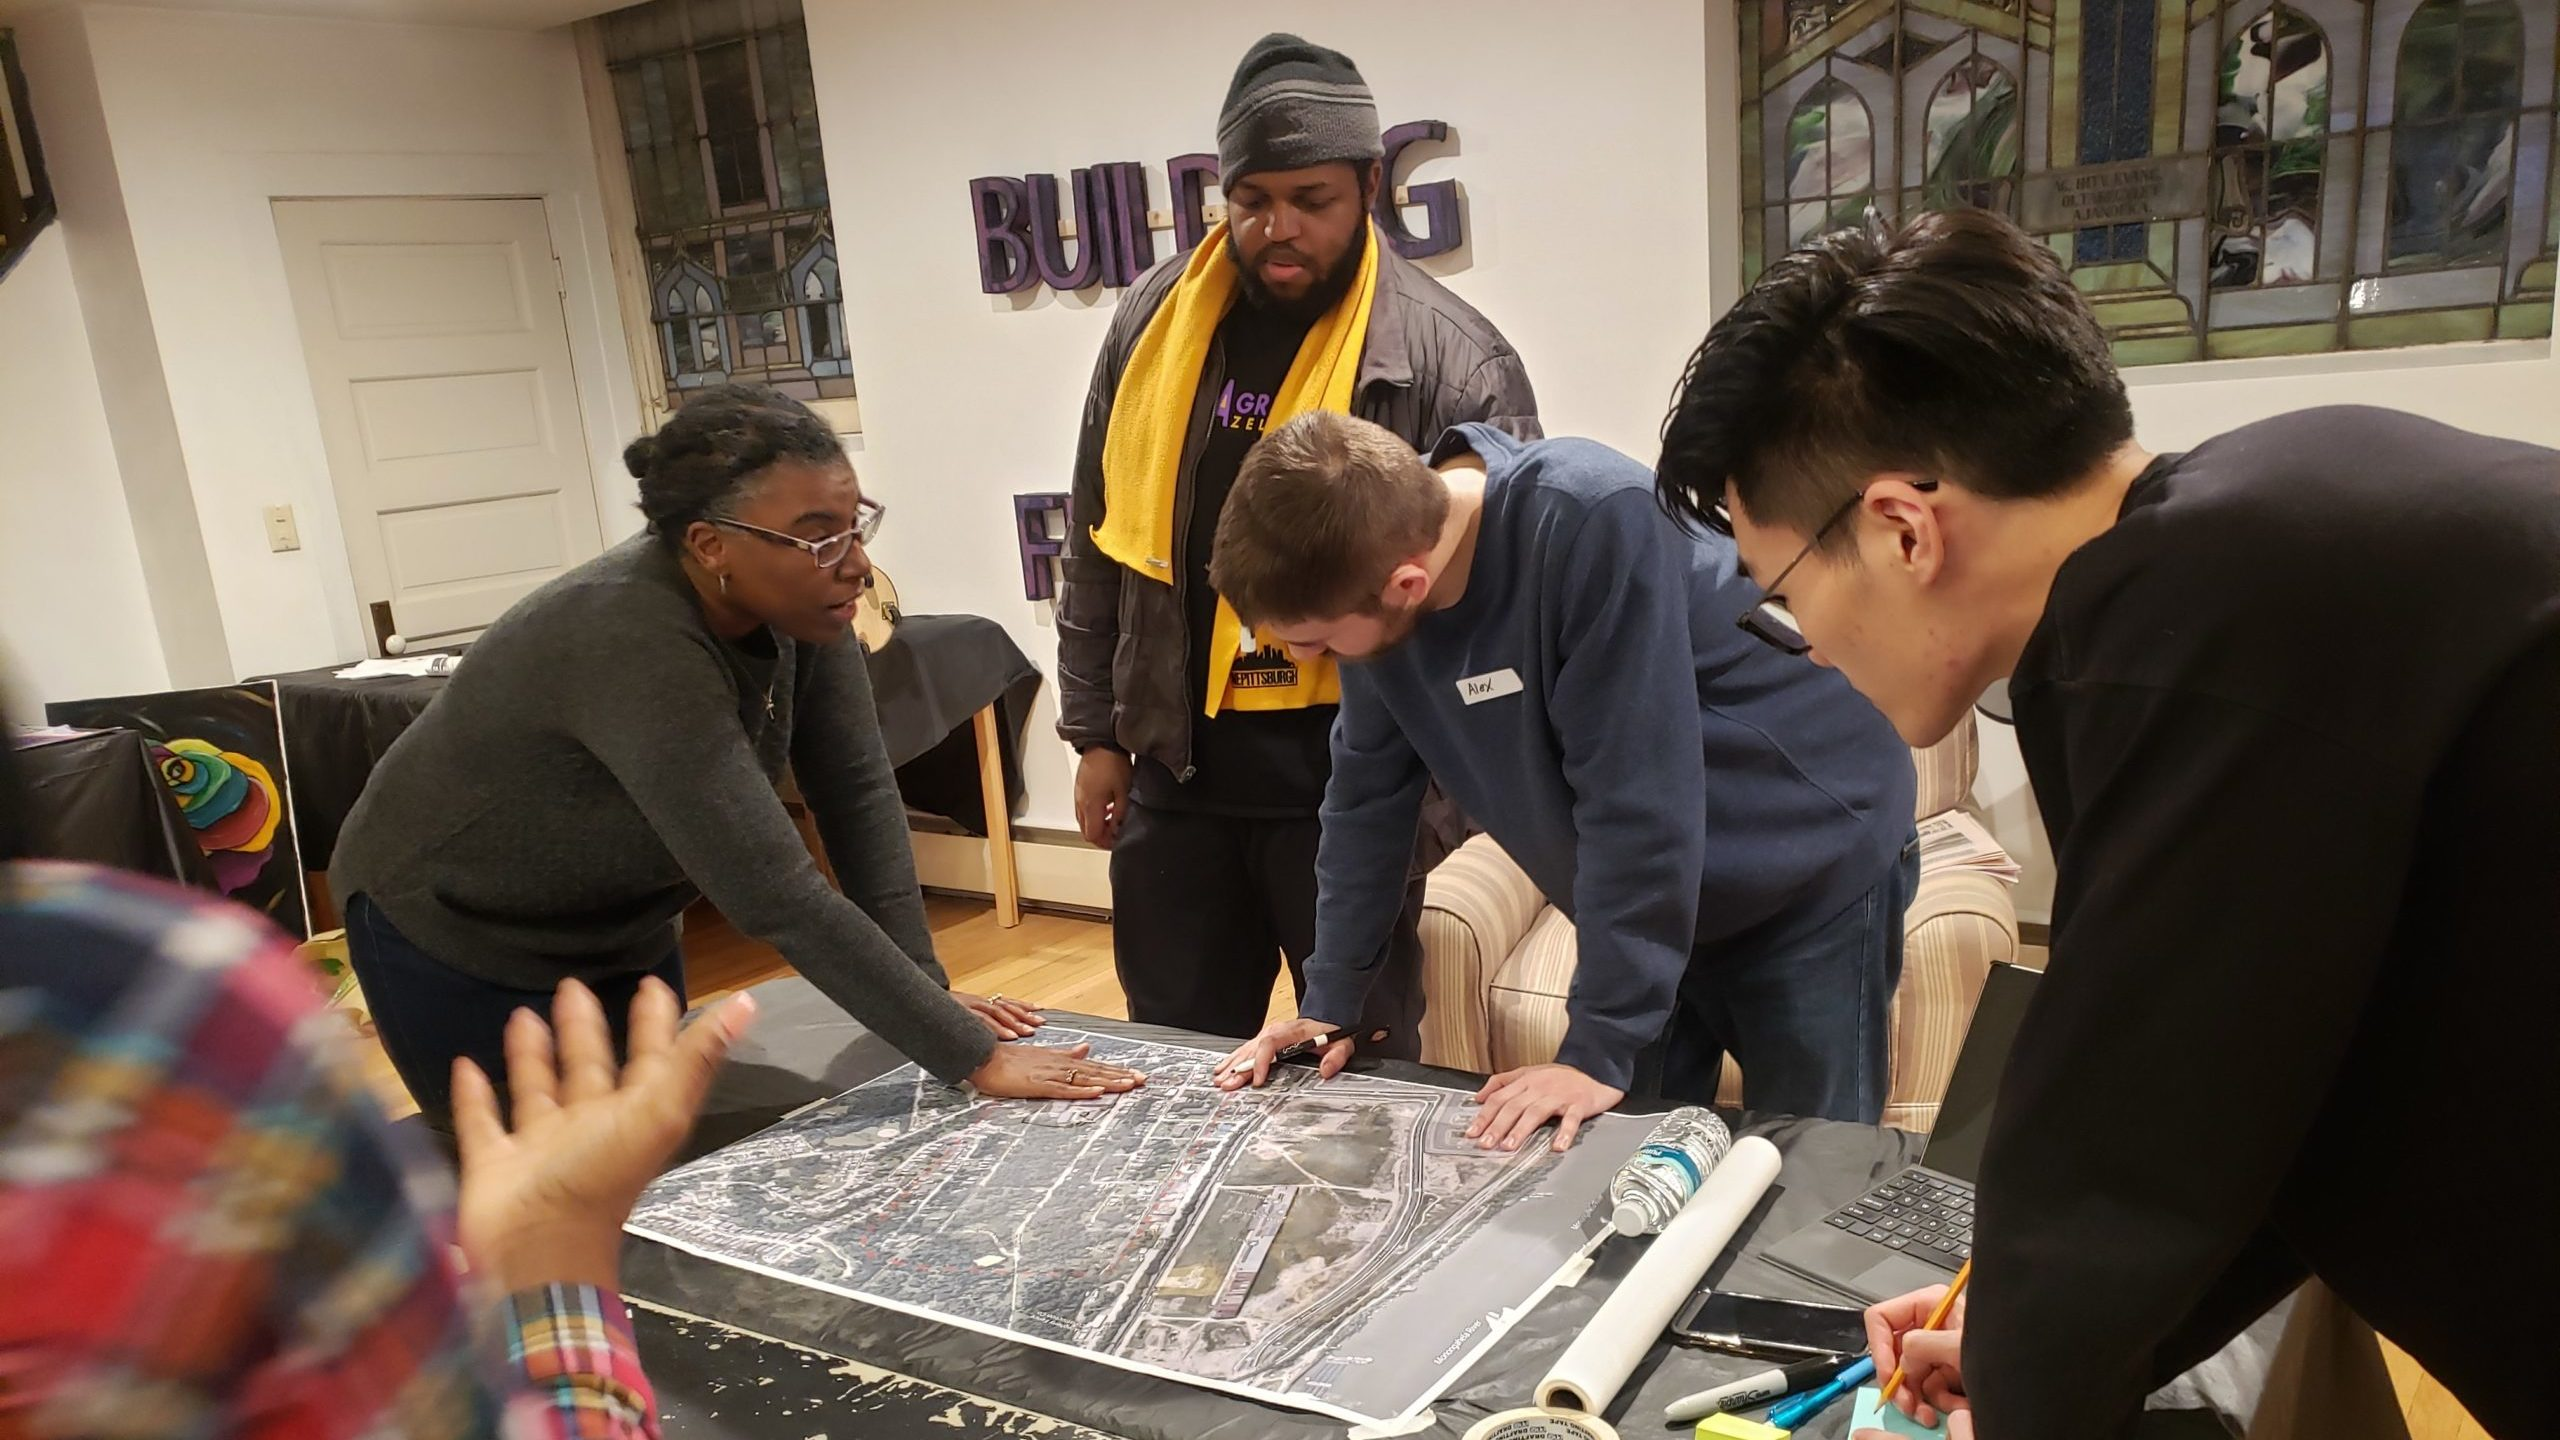 Students look at architectural plans